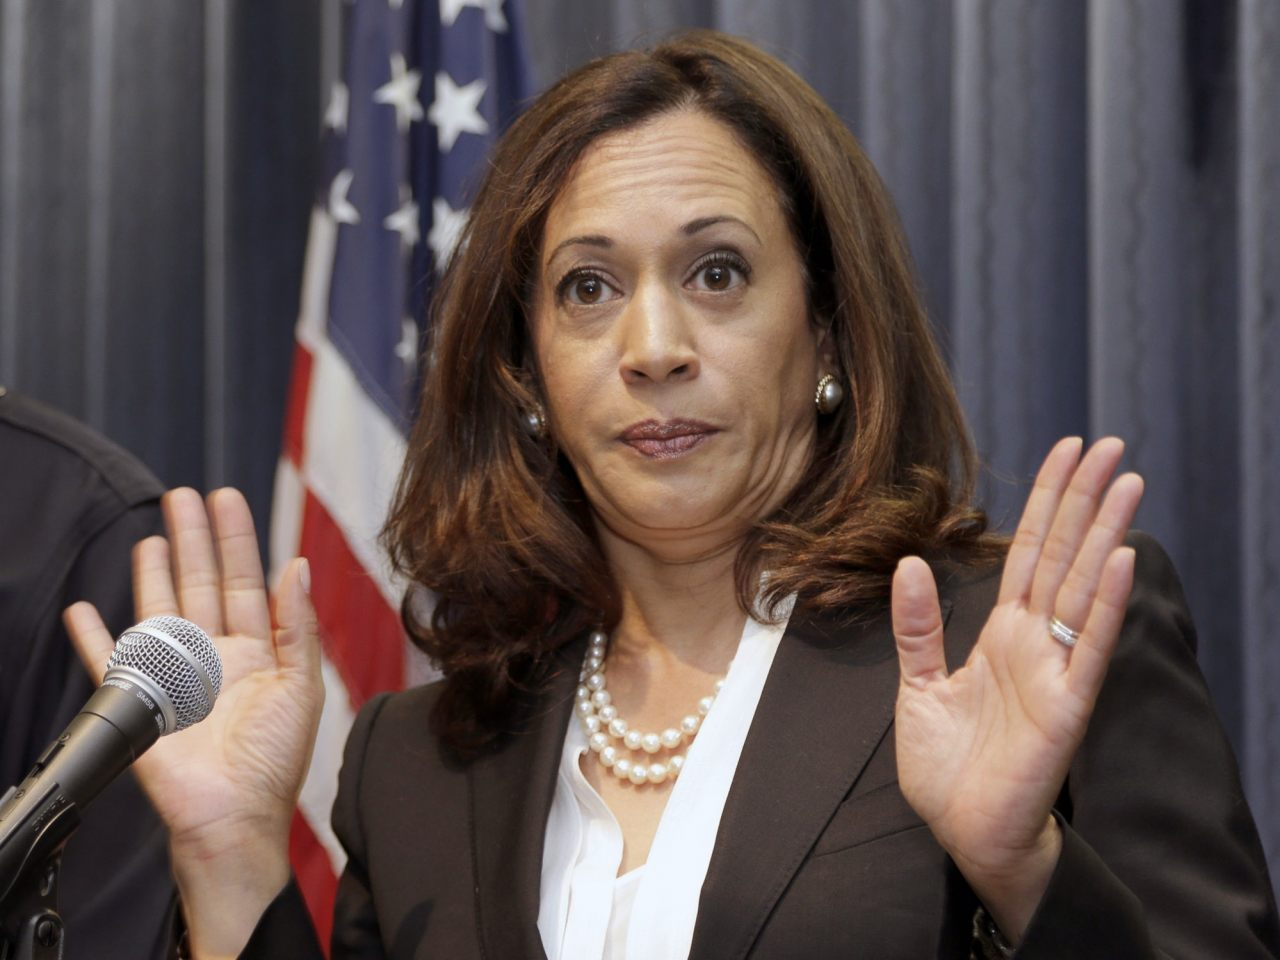 Image: Joe Biden picks Kamala Harris to be his running mate: Here are all the reasons why she's wrong for America